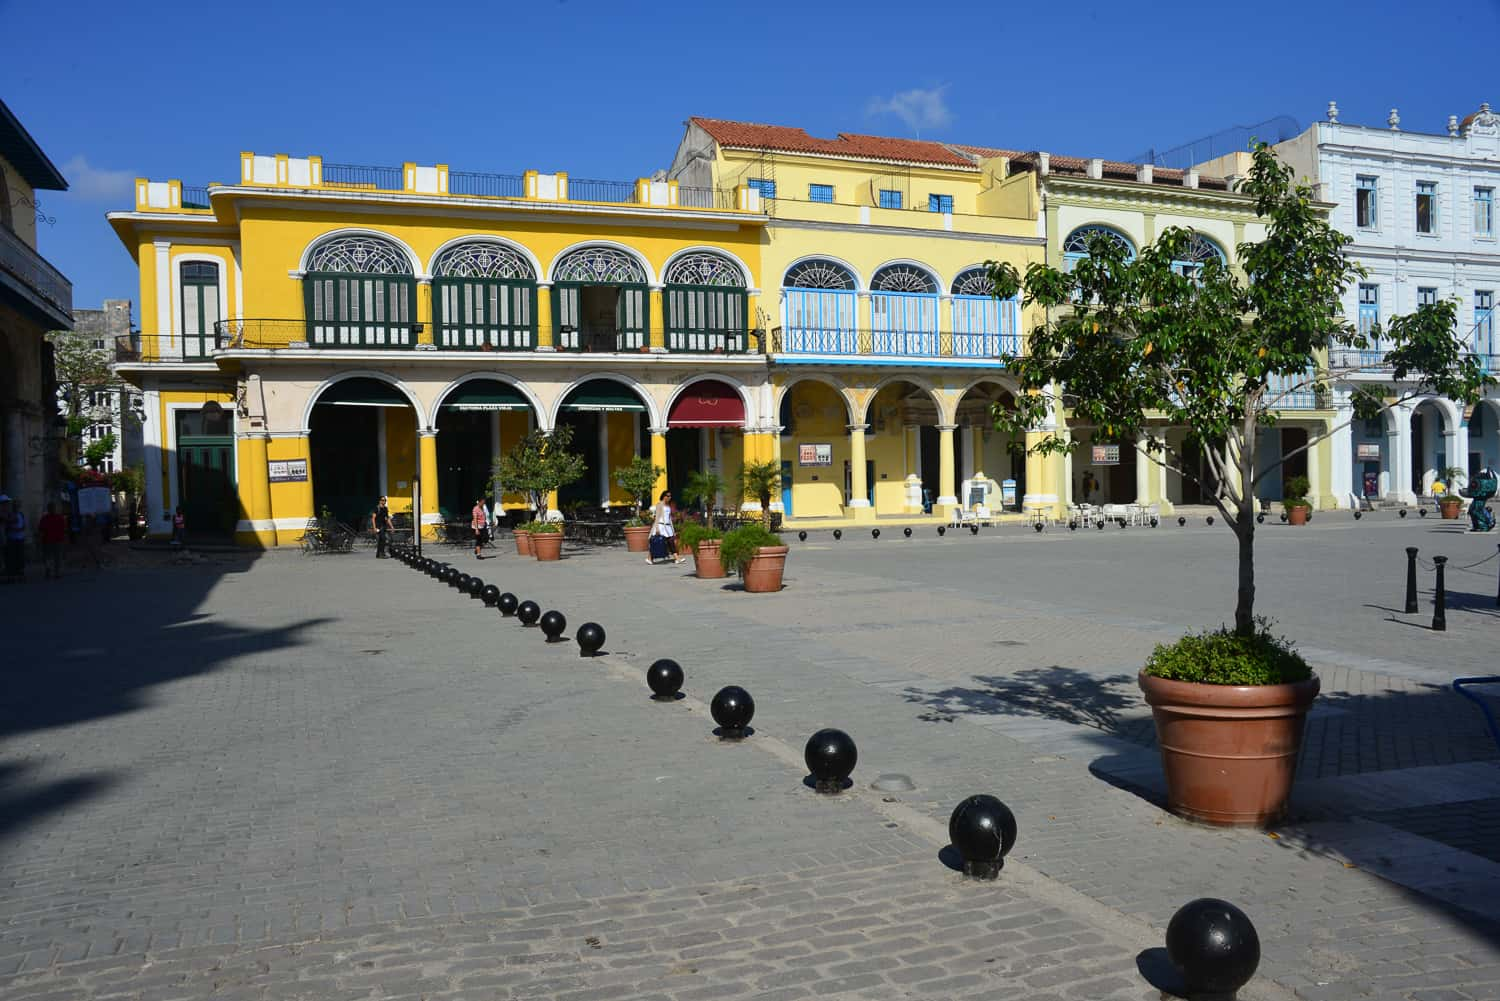 Buildings in this square are fully restored